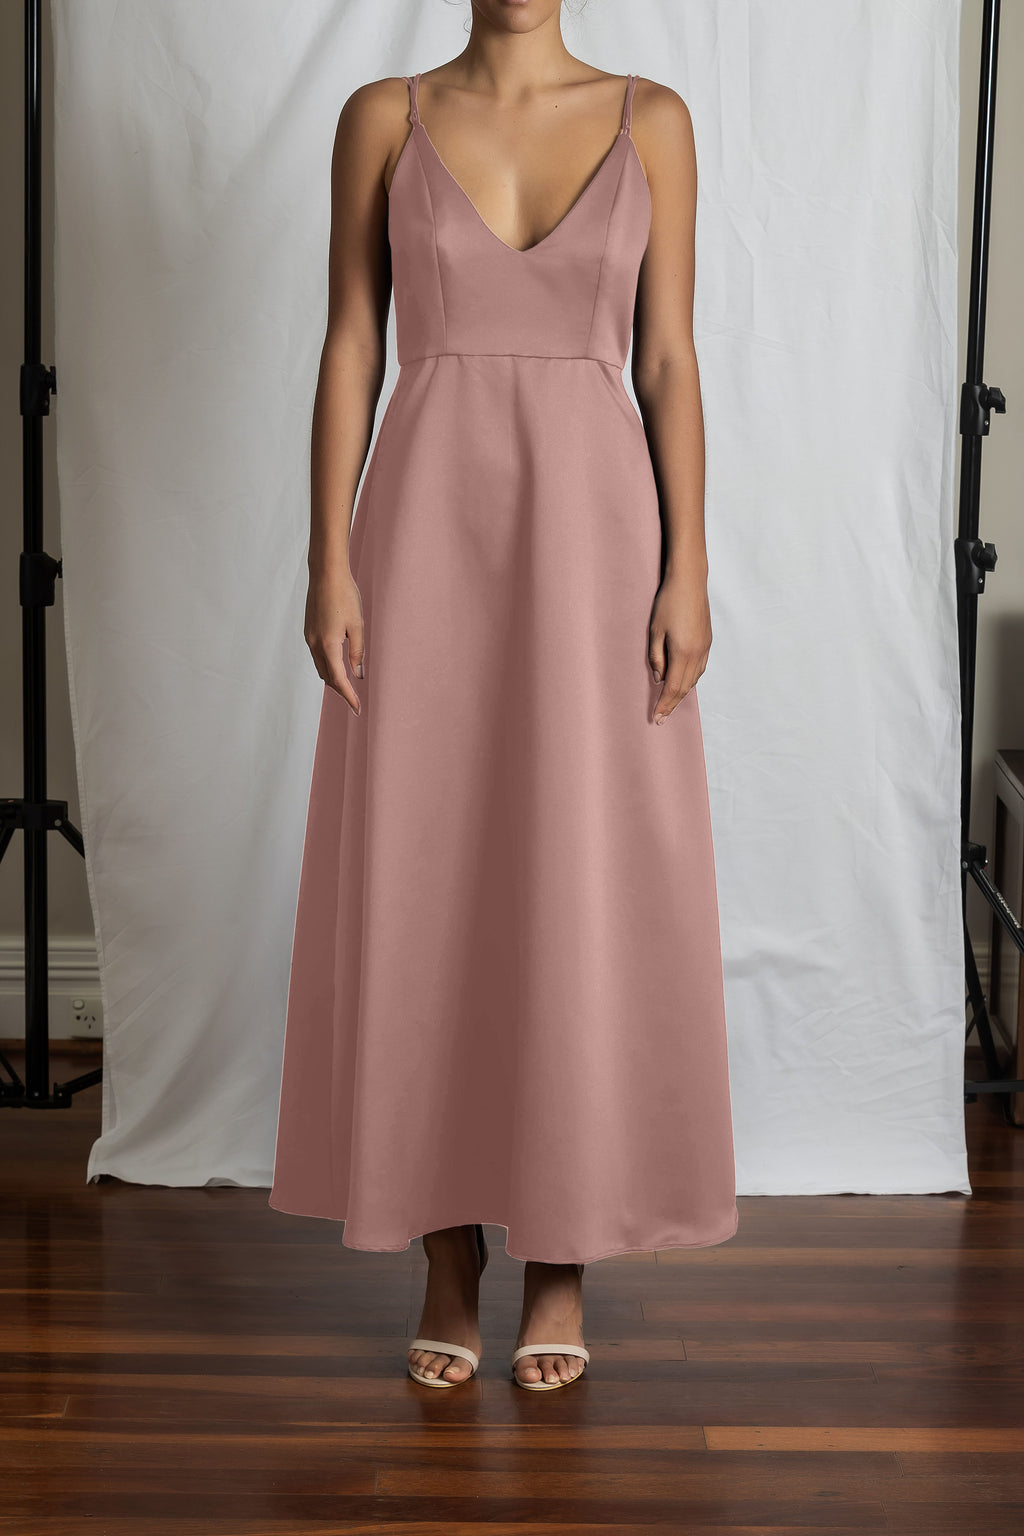 Alyssa A-Line Dress - Dusty Pink Duchess Satin